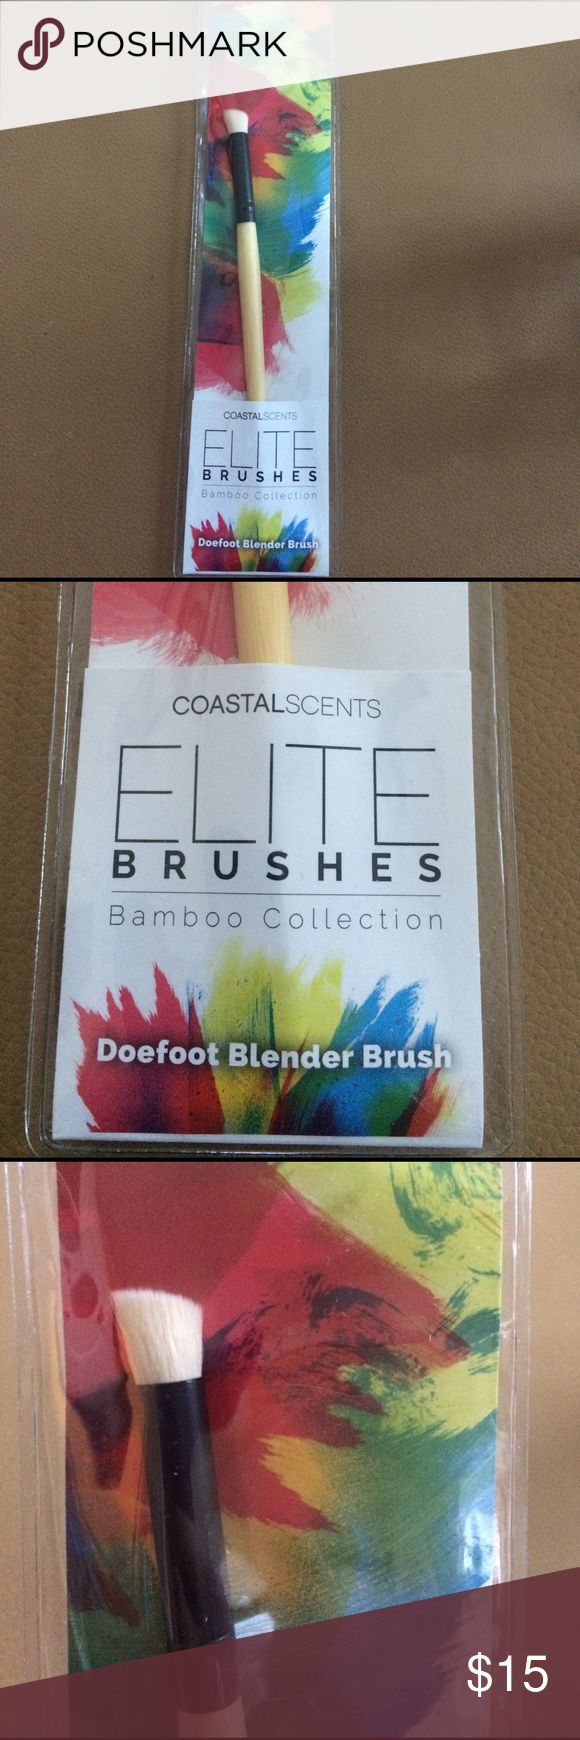 Coastal scents blender brush NWOT elite brush doefoot blender brush coastal scents Makeup Brushes & Tools